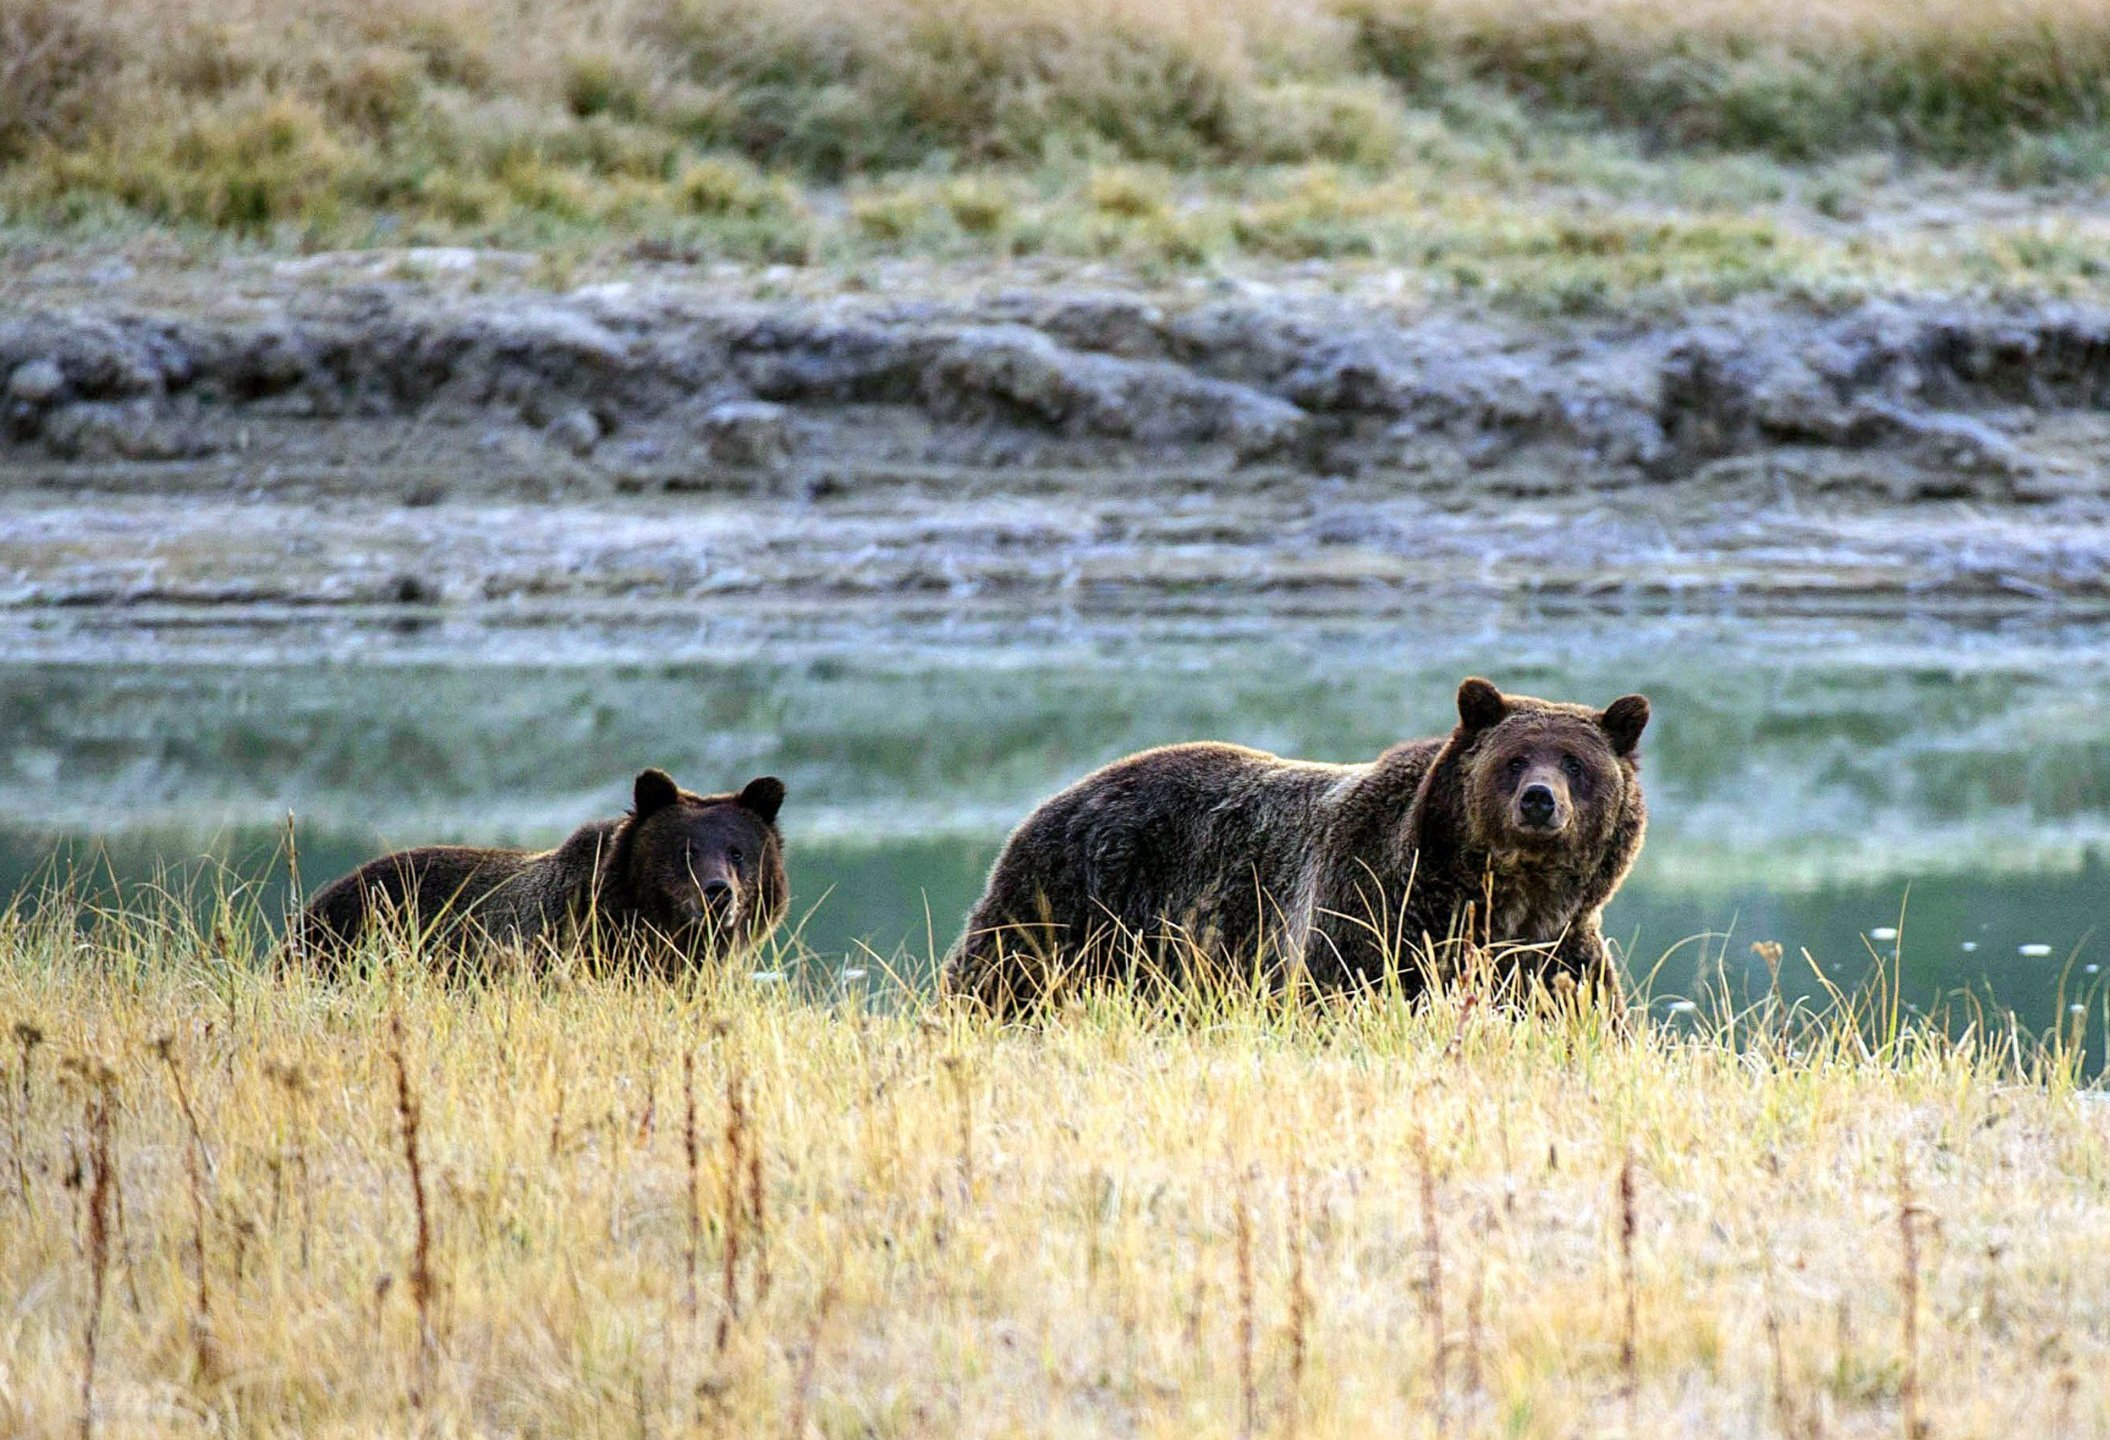 The Yellowstone National Park is America's first national park and extends through parts of Wyoming, Montana and Idaho. The animals are seen in this undated photo. (Credit: Karen Bleier/AFP/Getty Images via CNN)